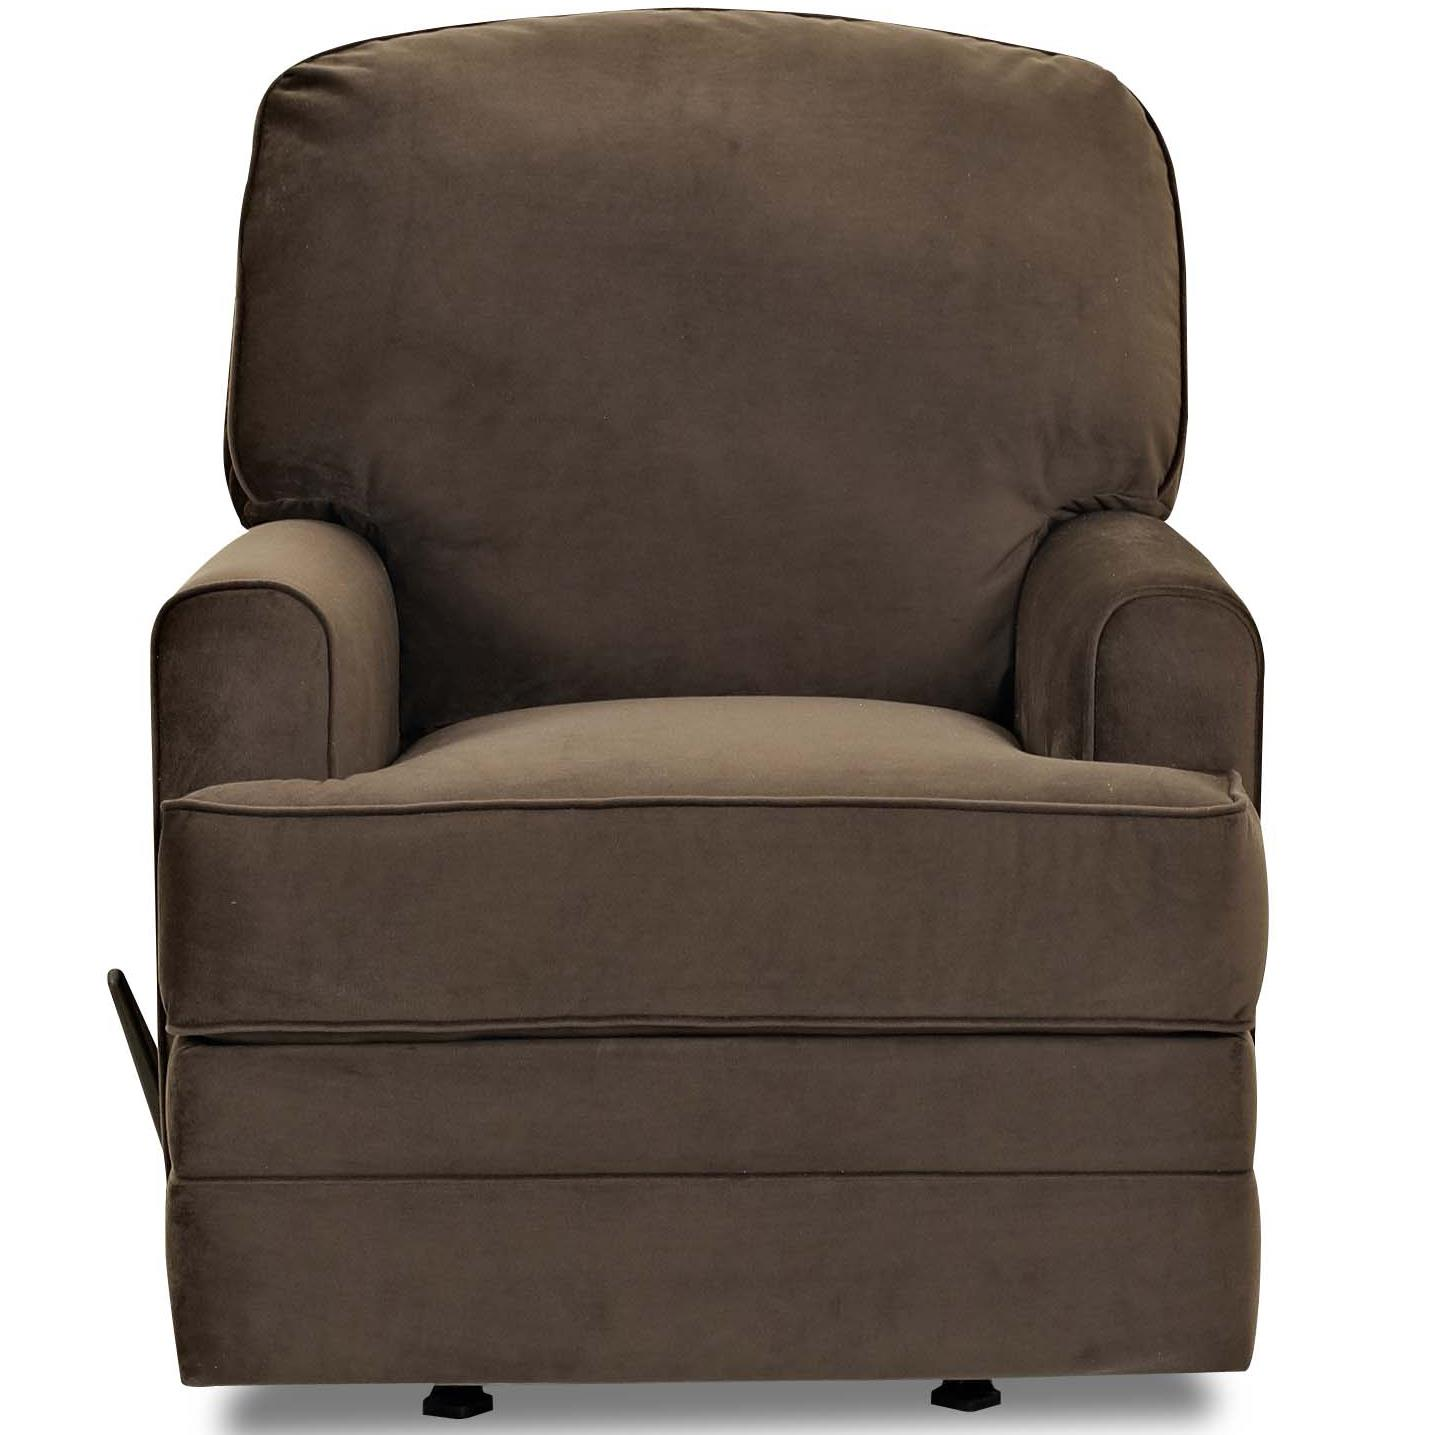 Casual Swivel Rocking Recliner with Track Arms